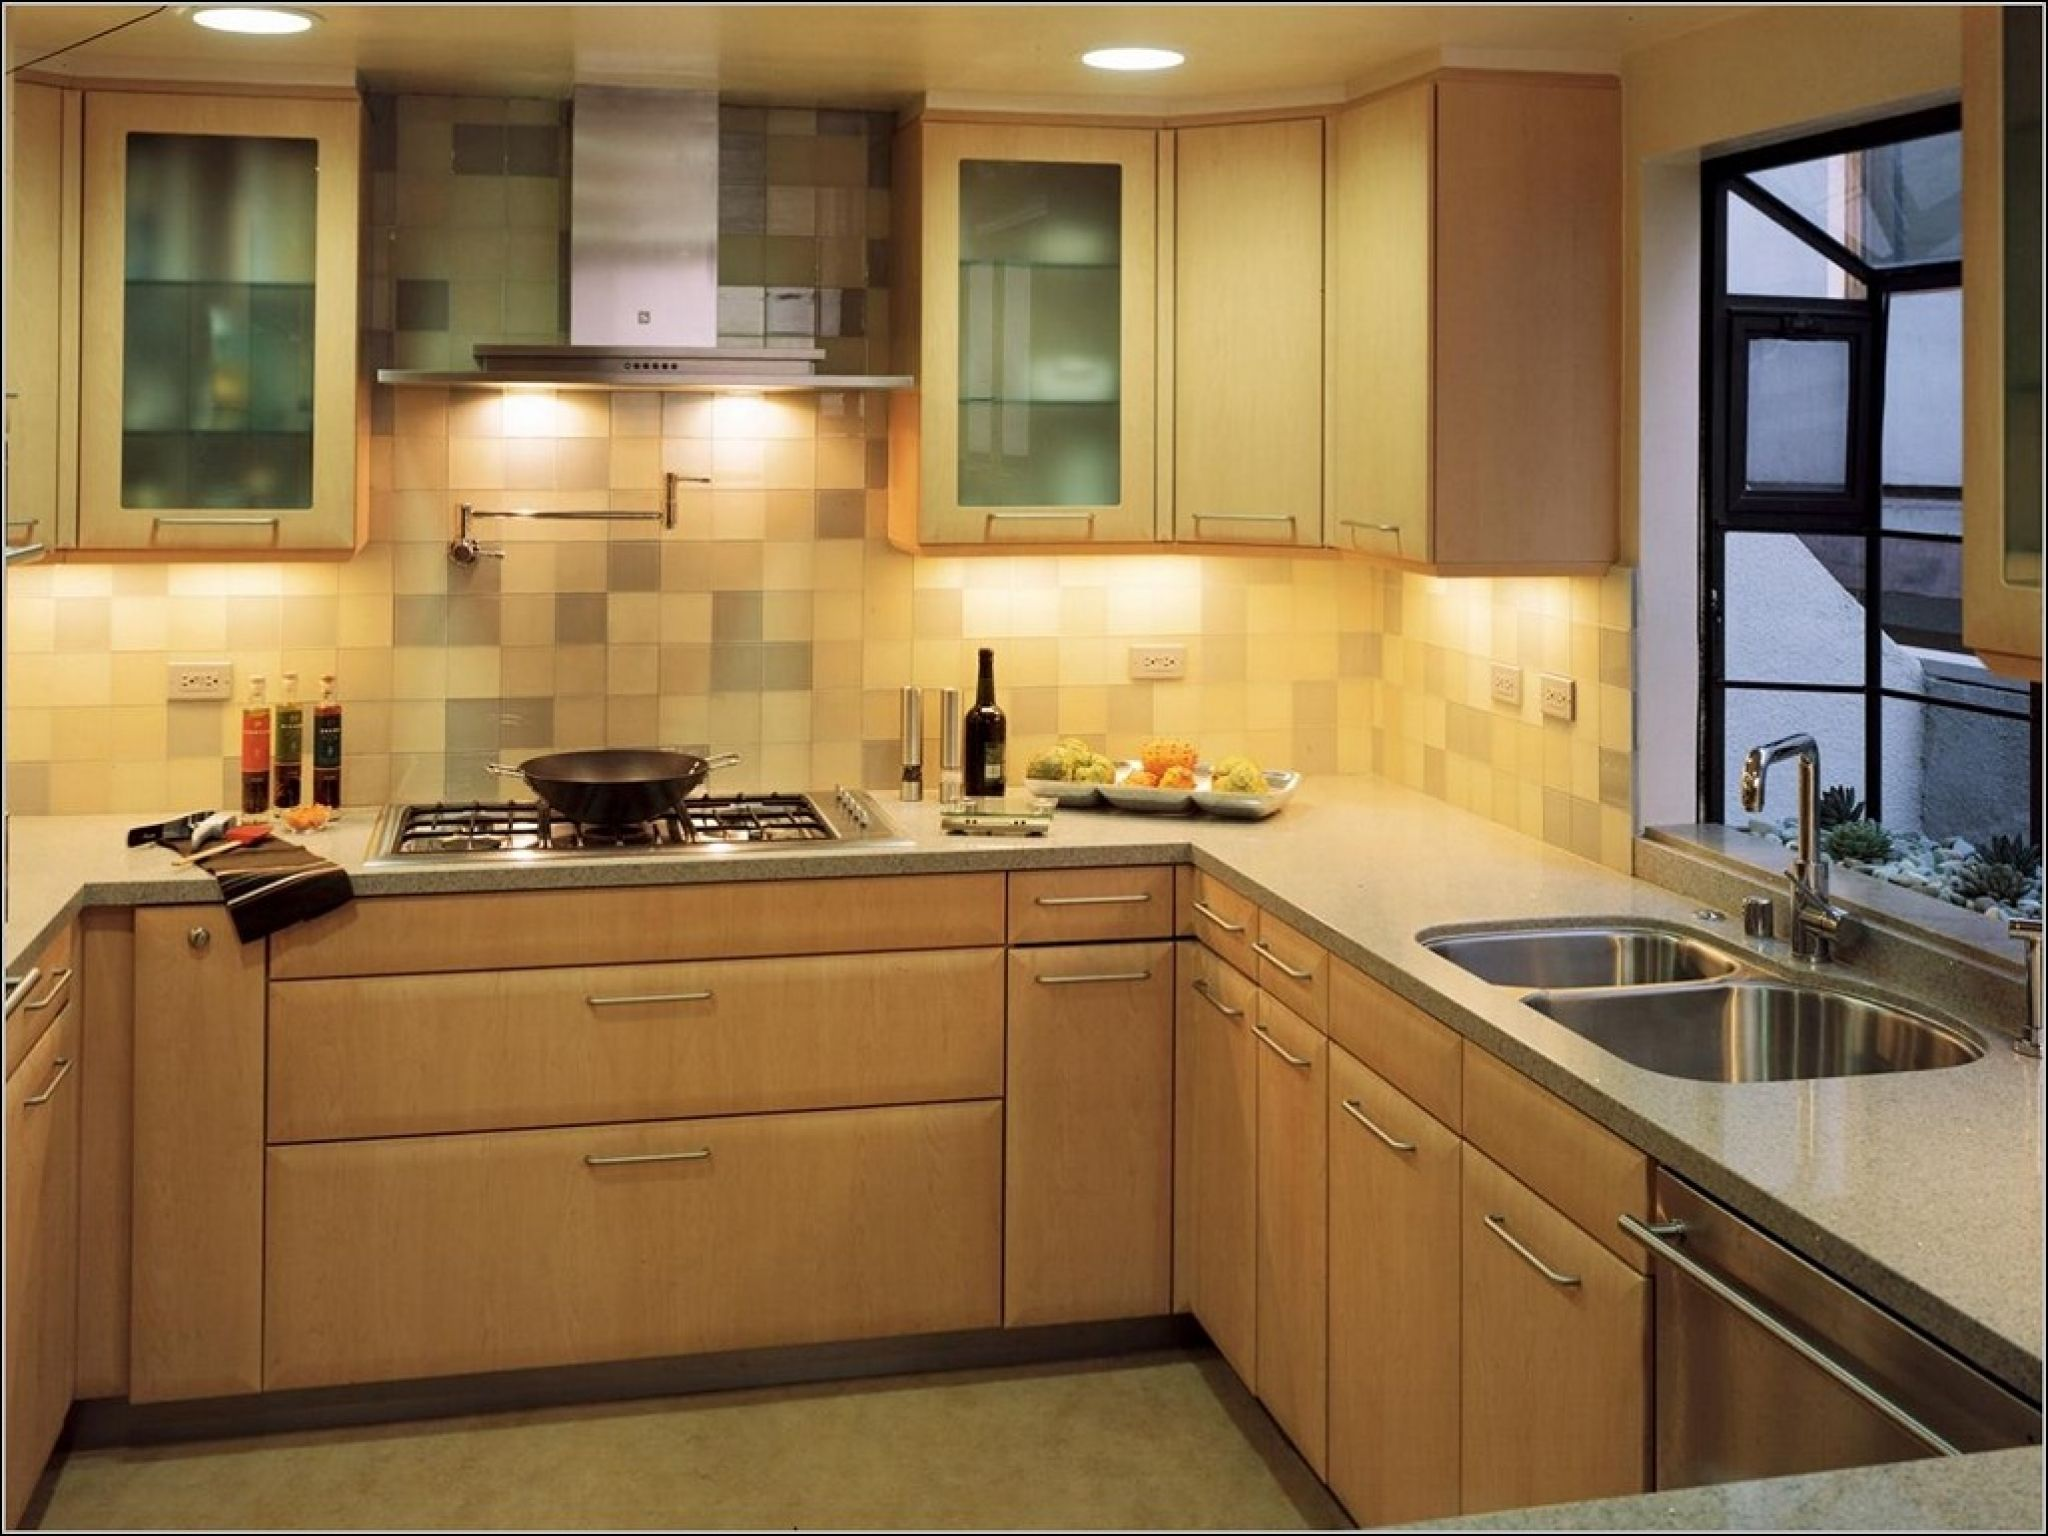 omega kitchen cabinets prices - kitchen trash can ideas Check more ...